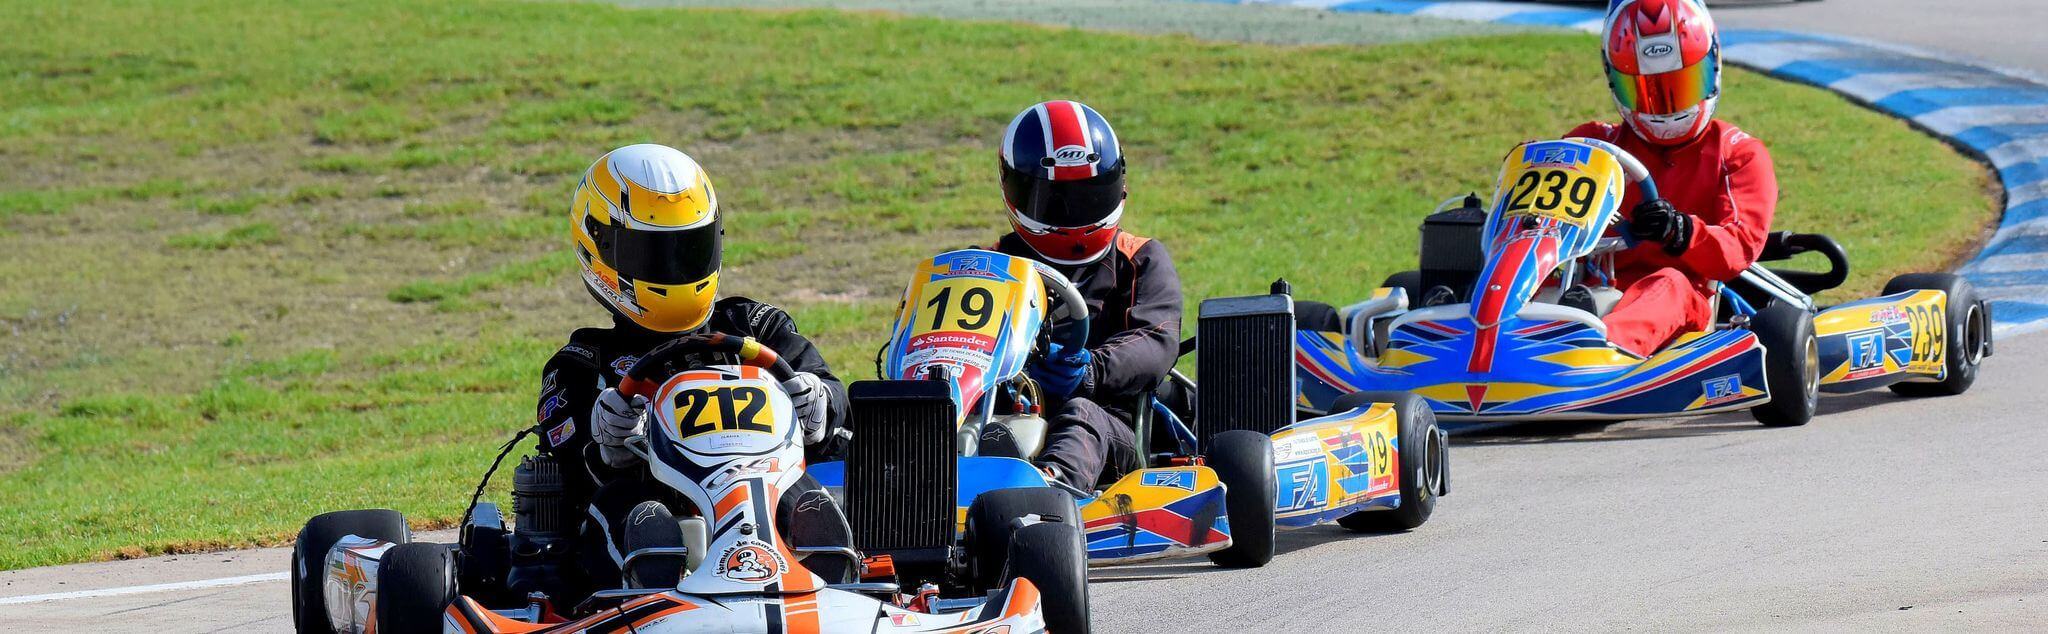 Karting in Berkshire